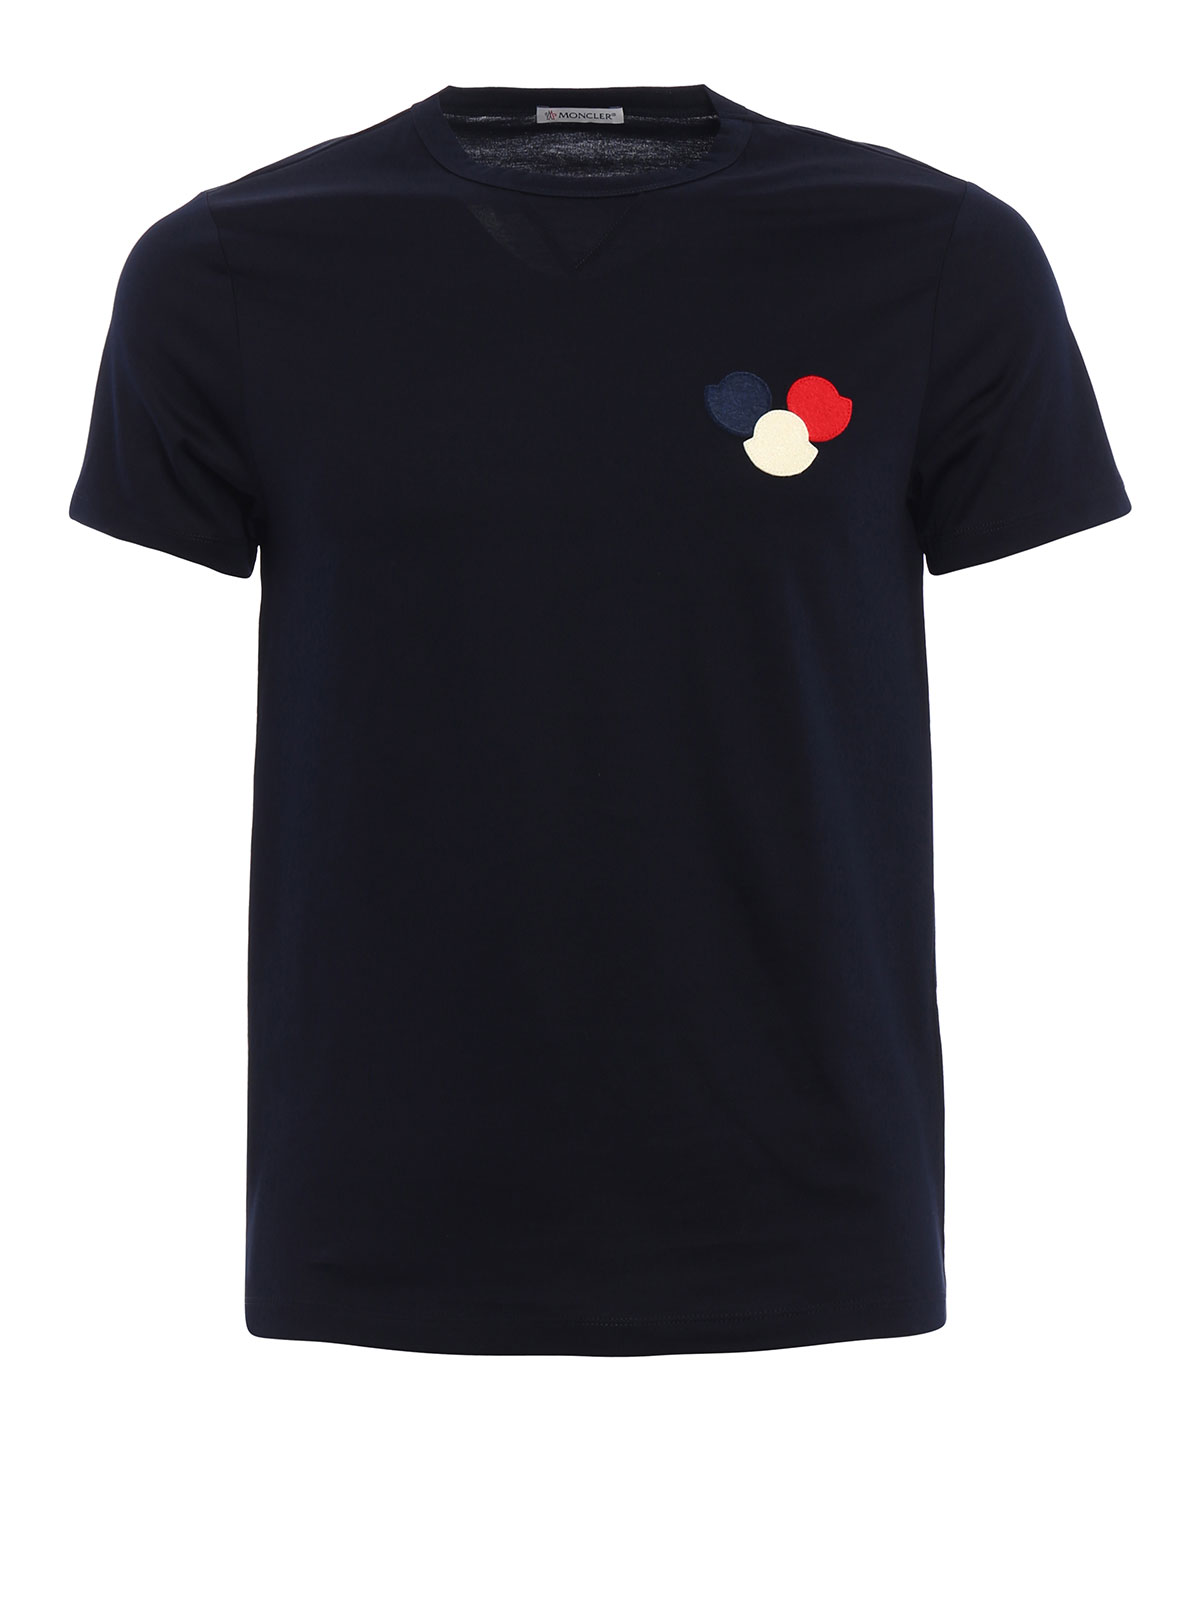 tricolour logo appliqu tee by moncler t shirts shop. Black Bedroom Furniture Sets. Home Design Ideas